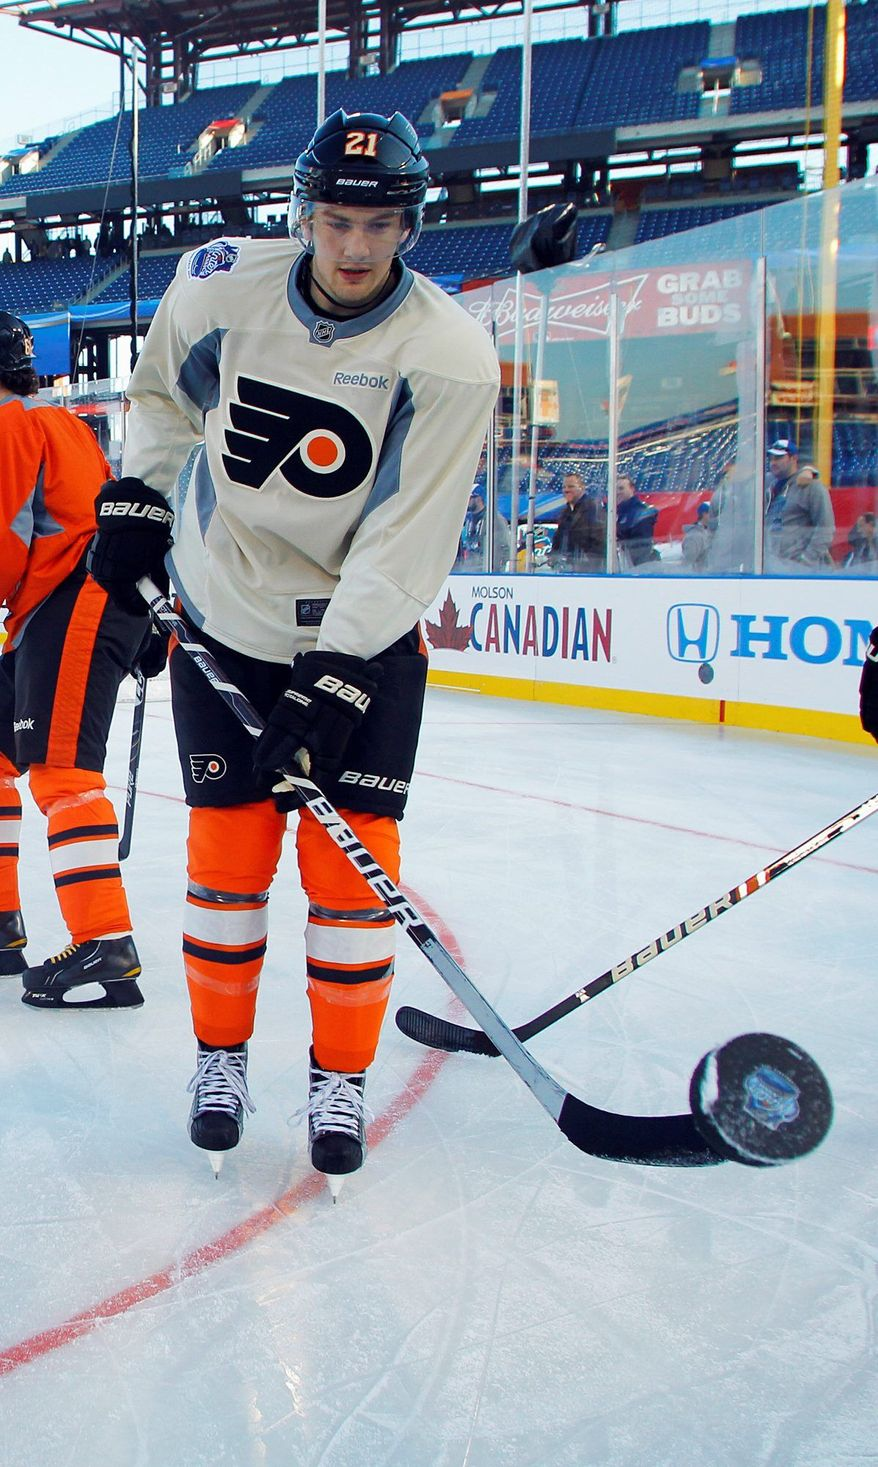 Philadelphia Flyers forward James van Riemsdyk lofts the puck with his stick during practice for the Winter Classic. The 22-year-old Van Riemsdyk has nine goals and 19 assists in 31 games. (Associated Press)